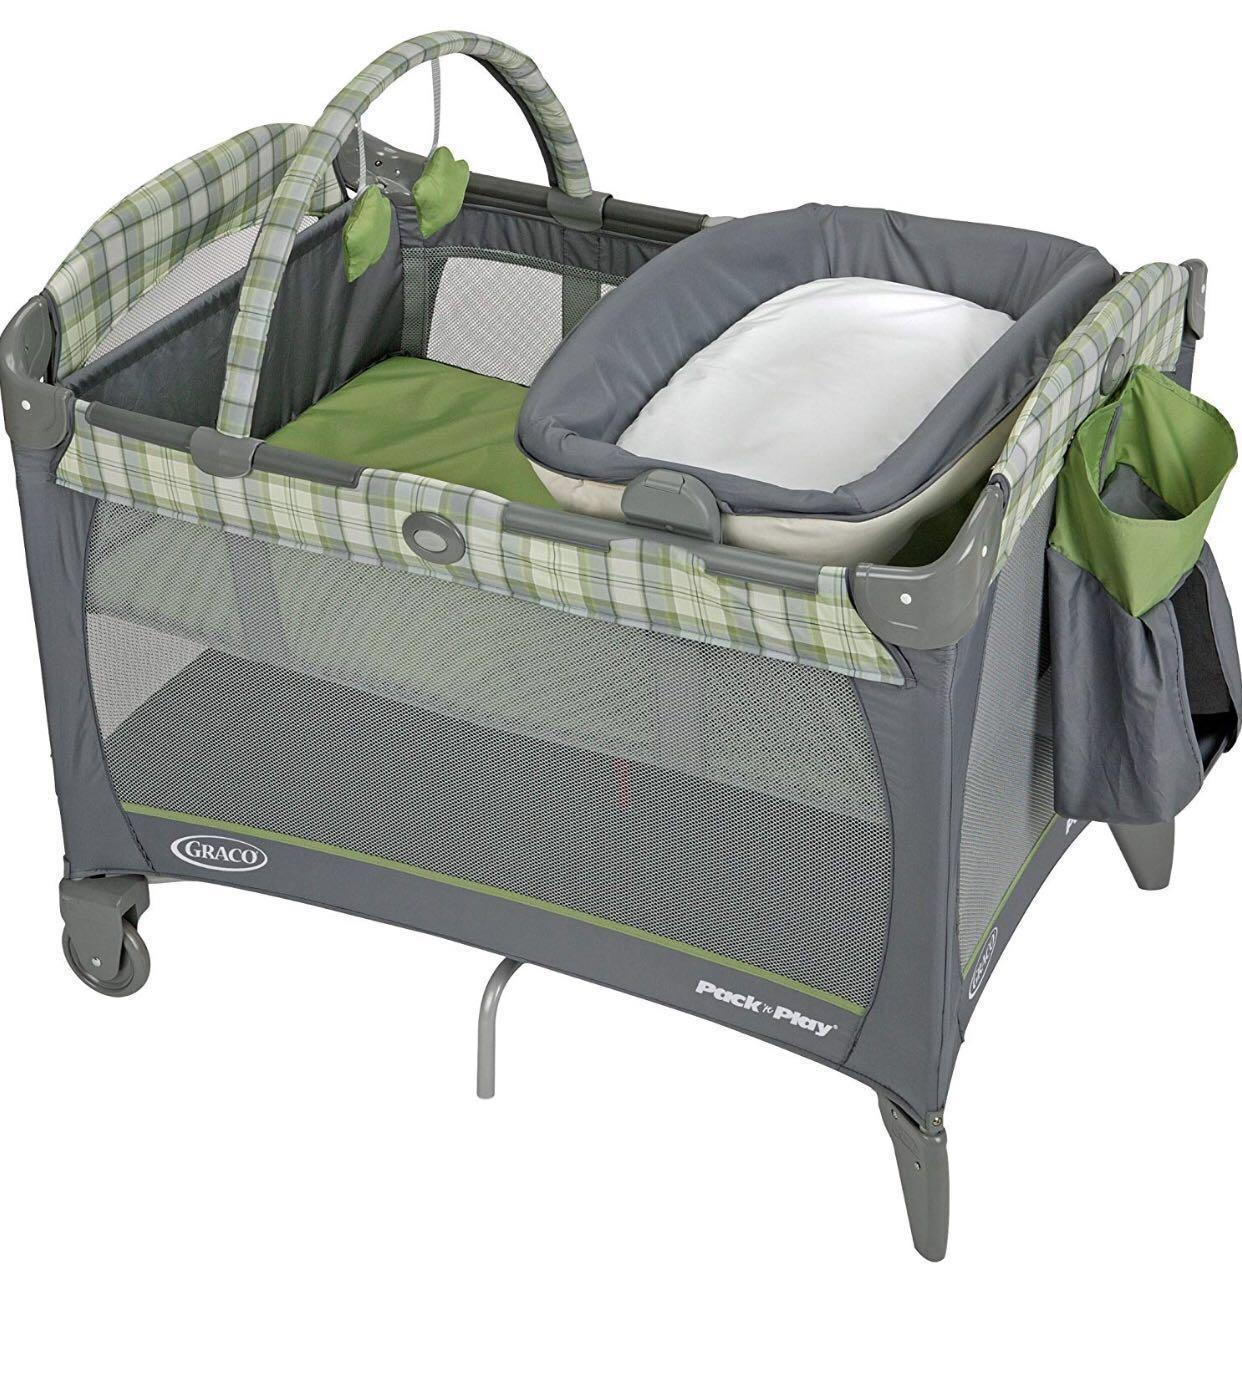 Baby Cradle Graco Graco Playpen Cot Babies Kids Cots Cribs On Carousell